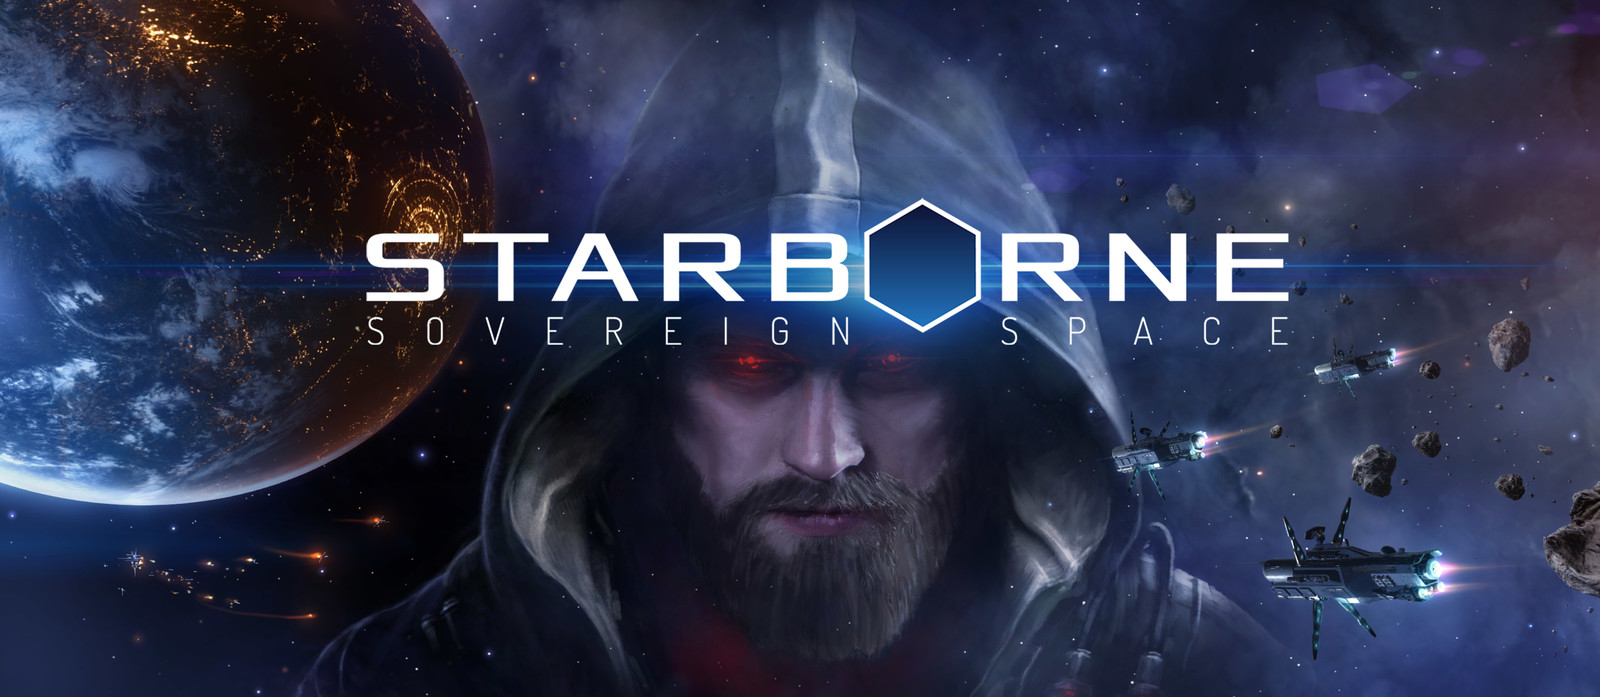 Cover image for the Starborne website with logo